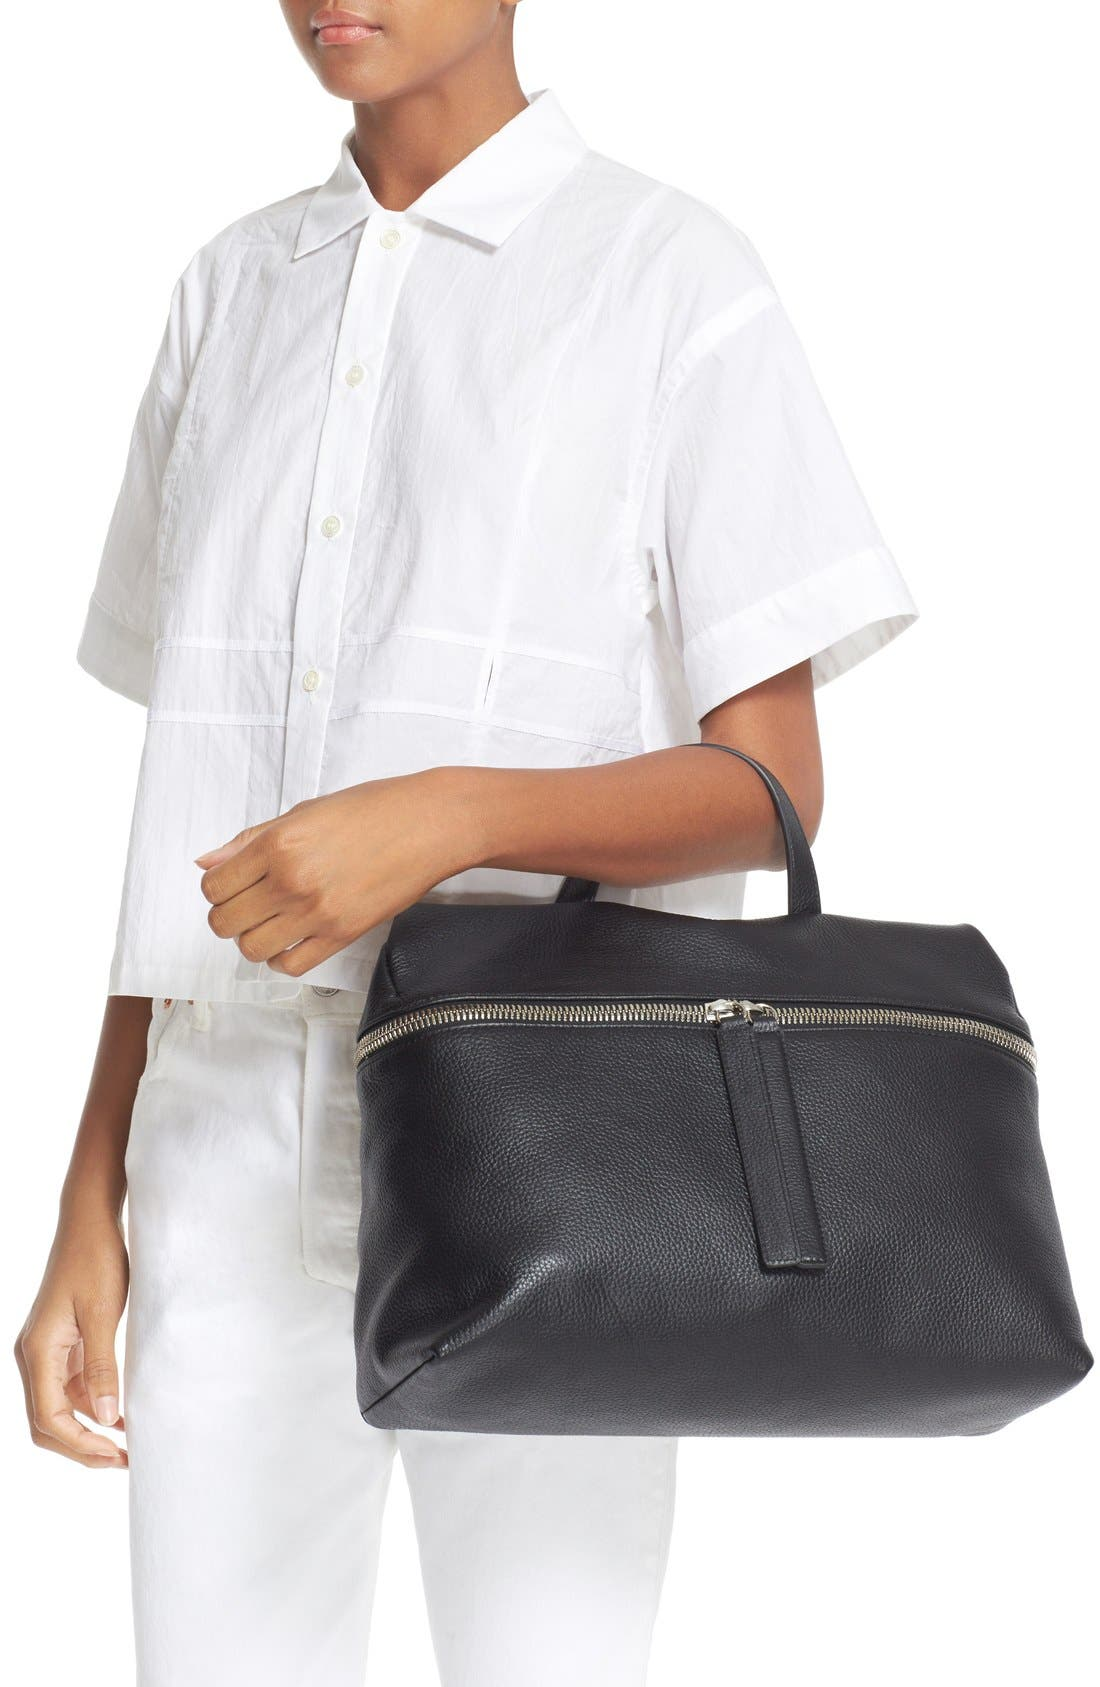 KARA Pebbled Leather Satchel